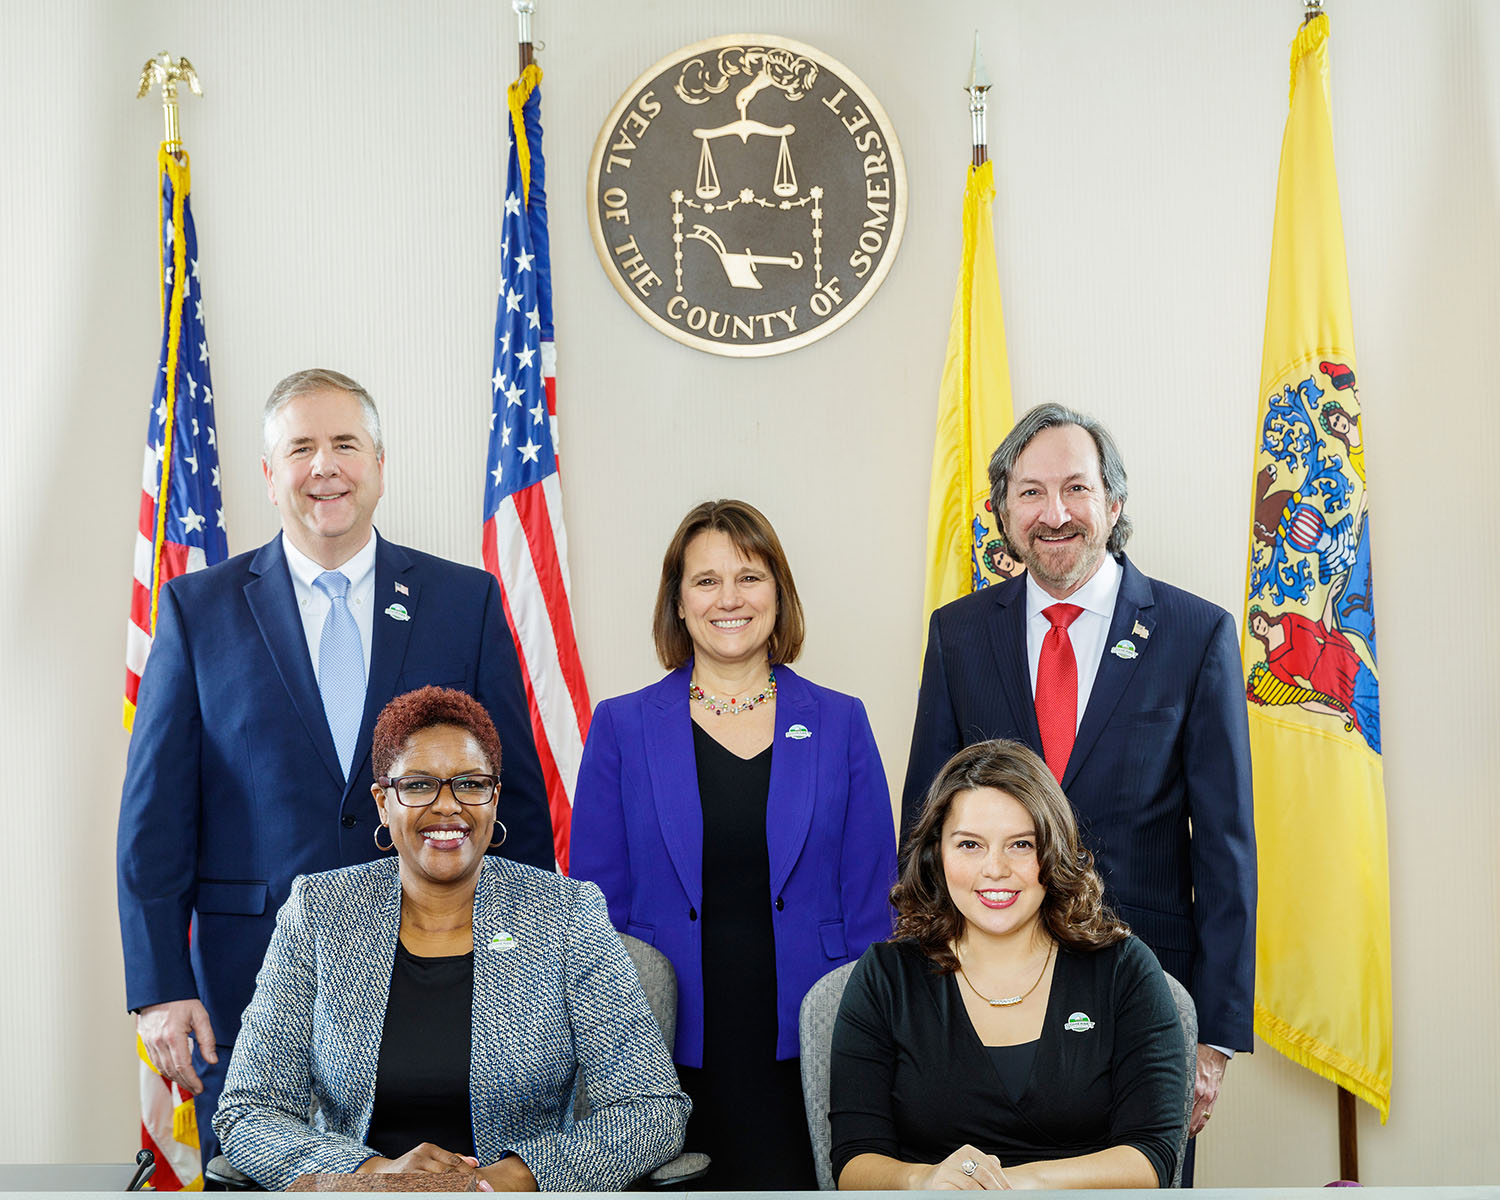 2020 Board of Freeholders Group Photo